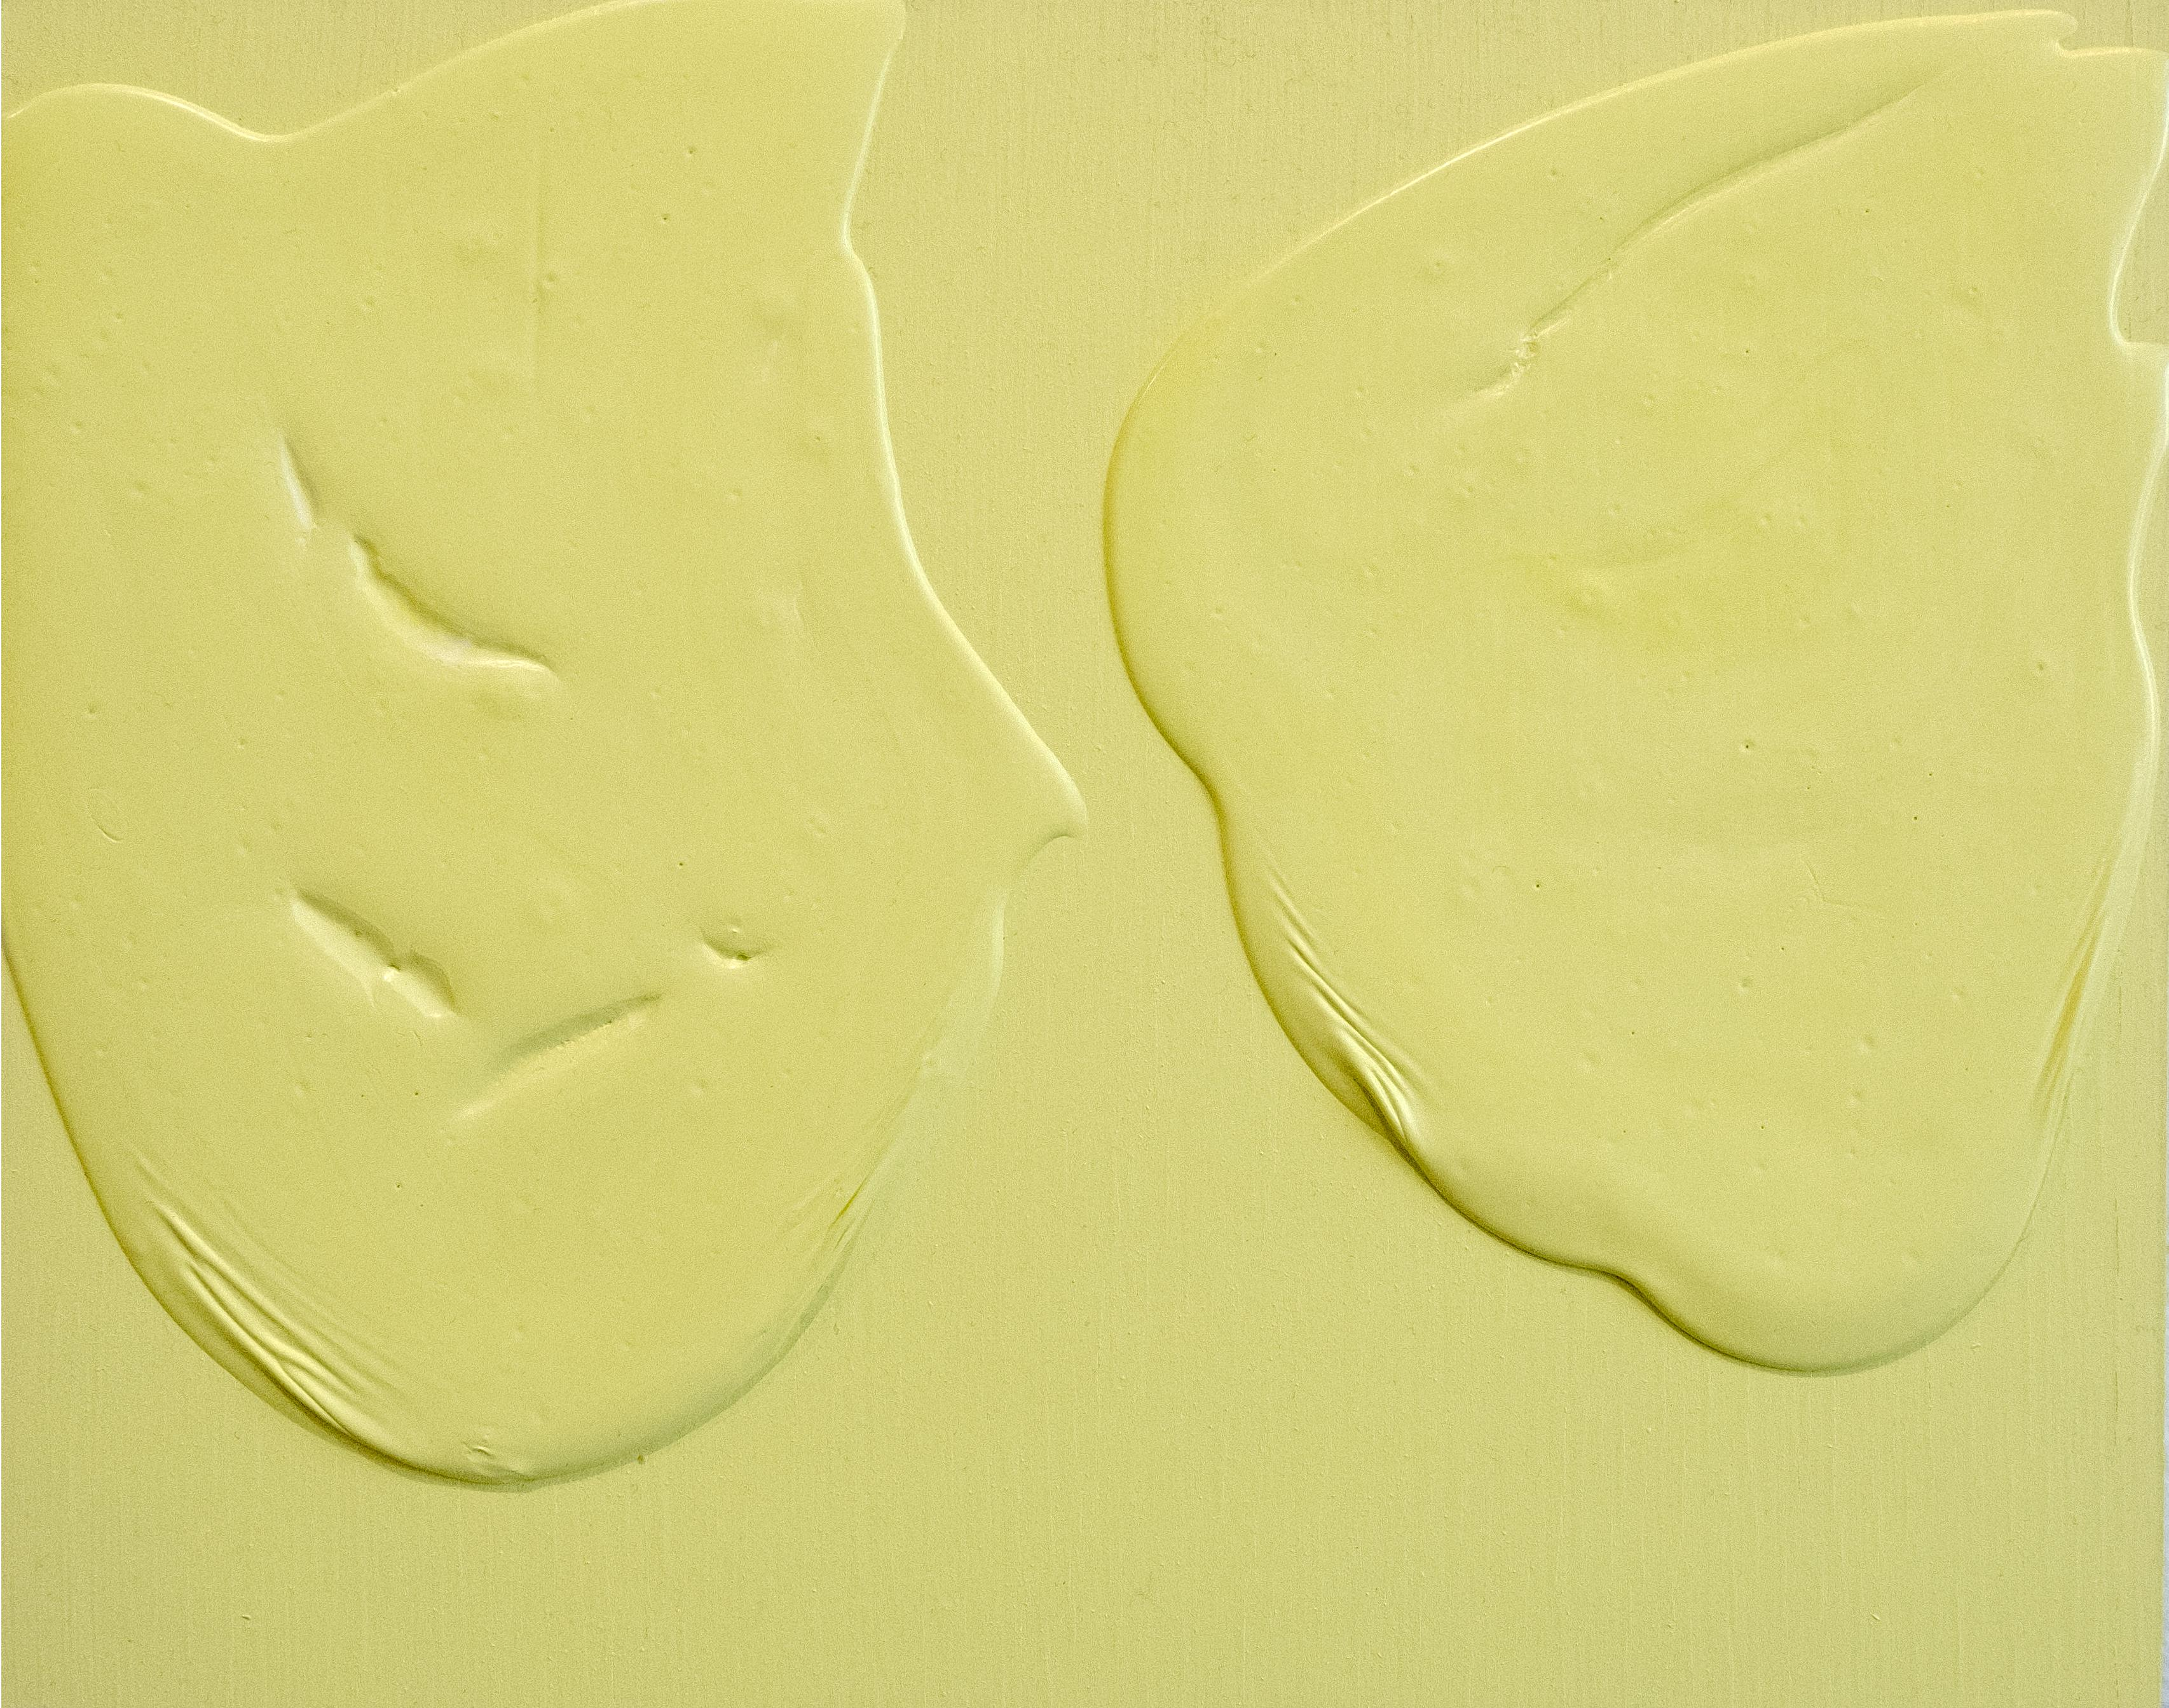 Meditation FB yellow cake - abstract textural yellow painting on wood panel